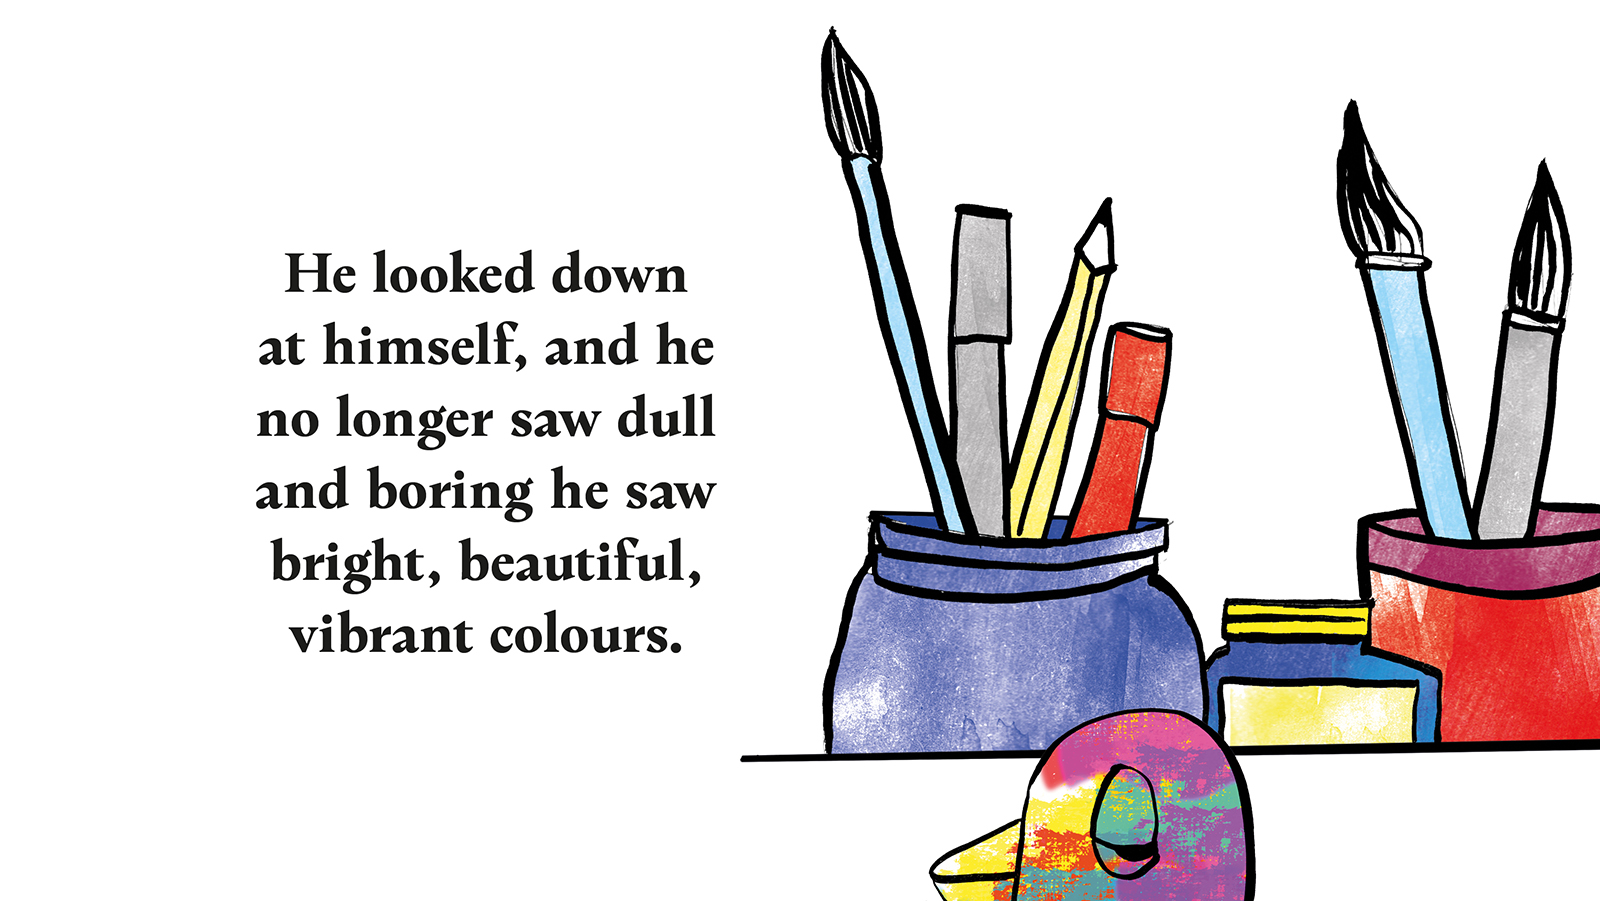 Kids Book | Writer | Illustration By James-Lee Duffy